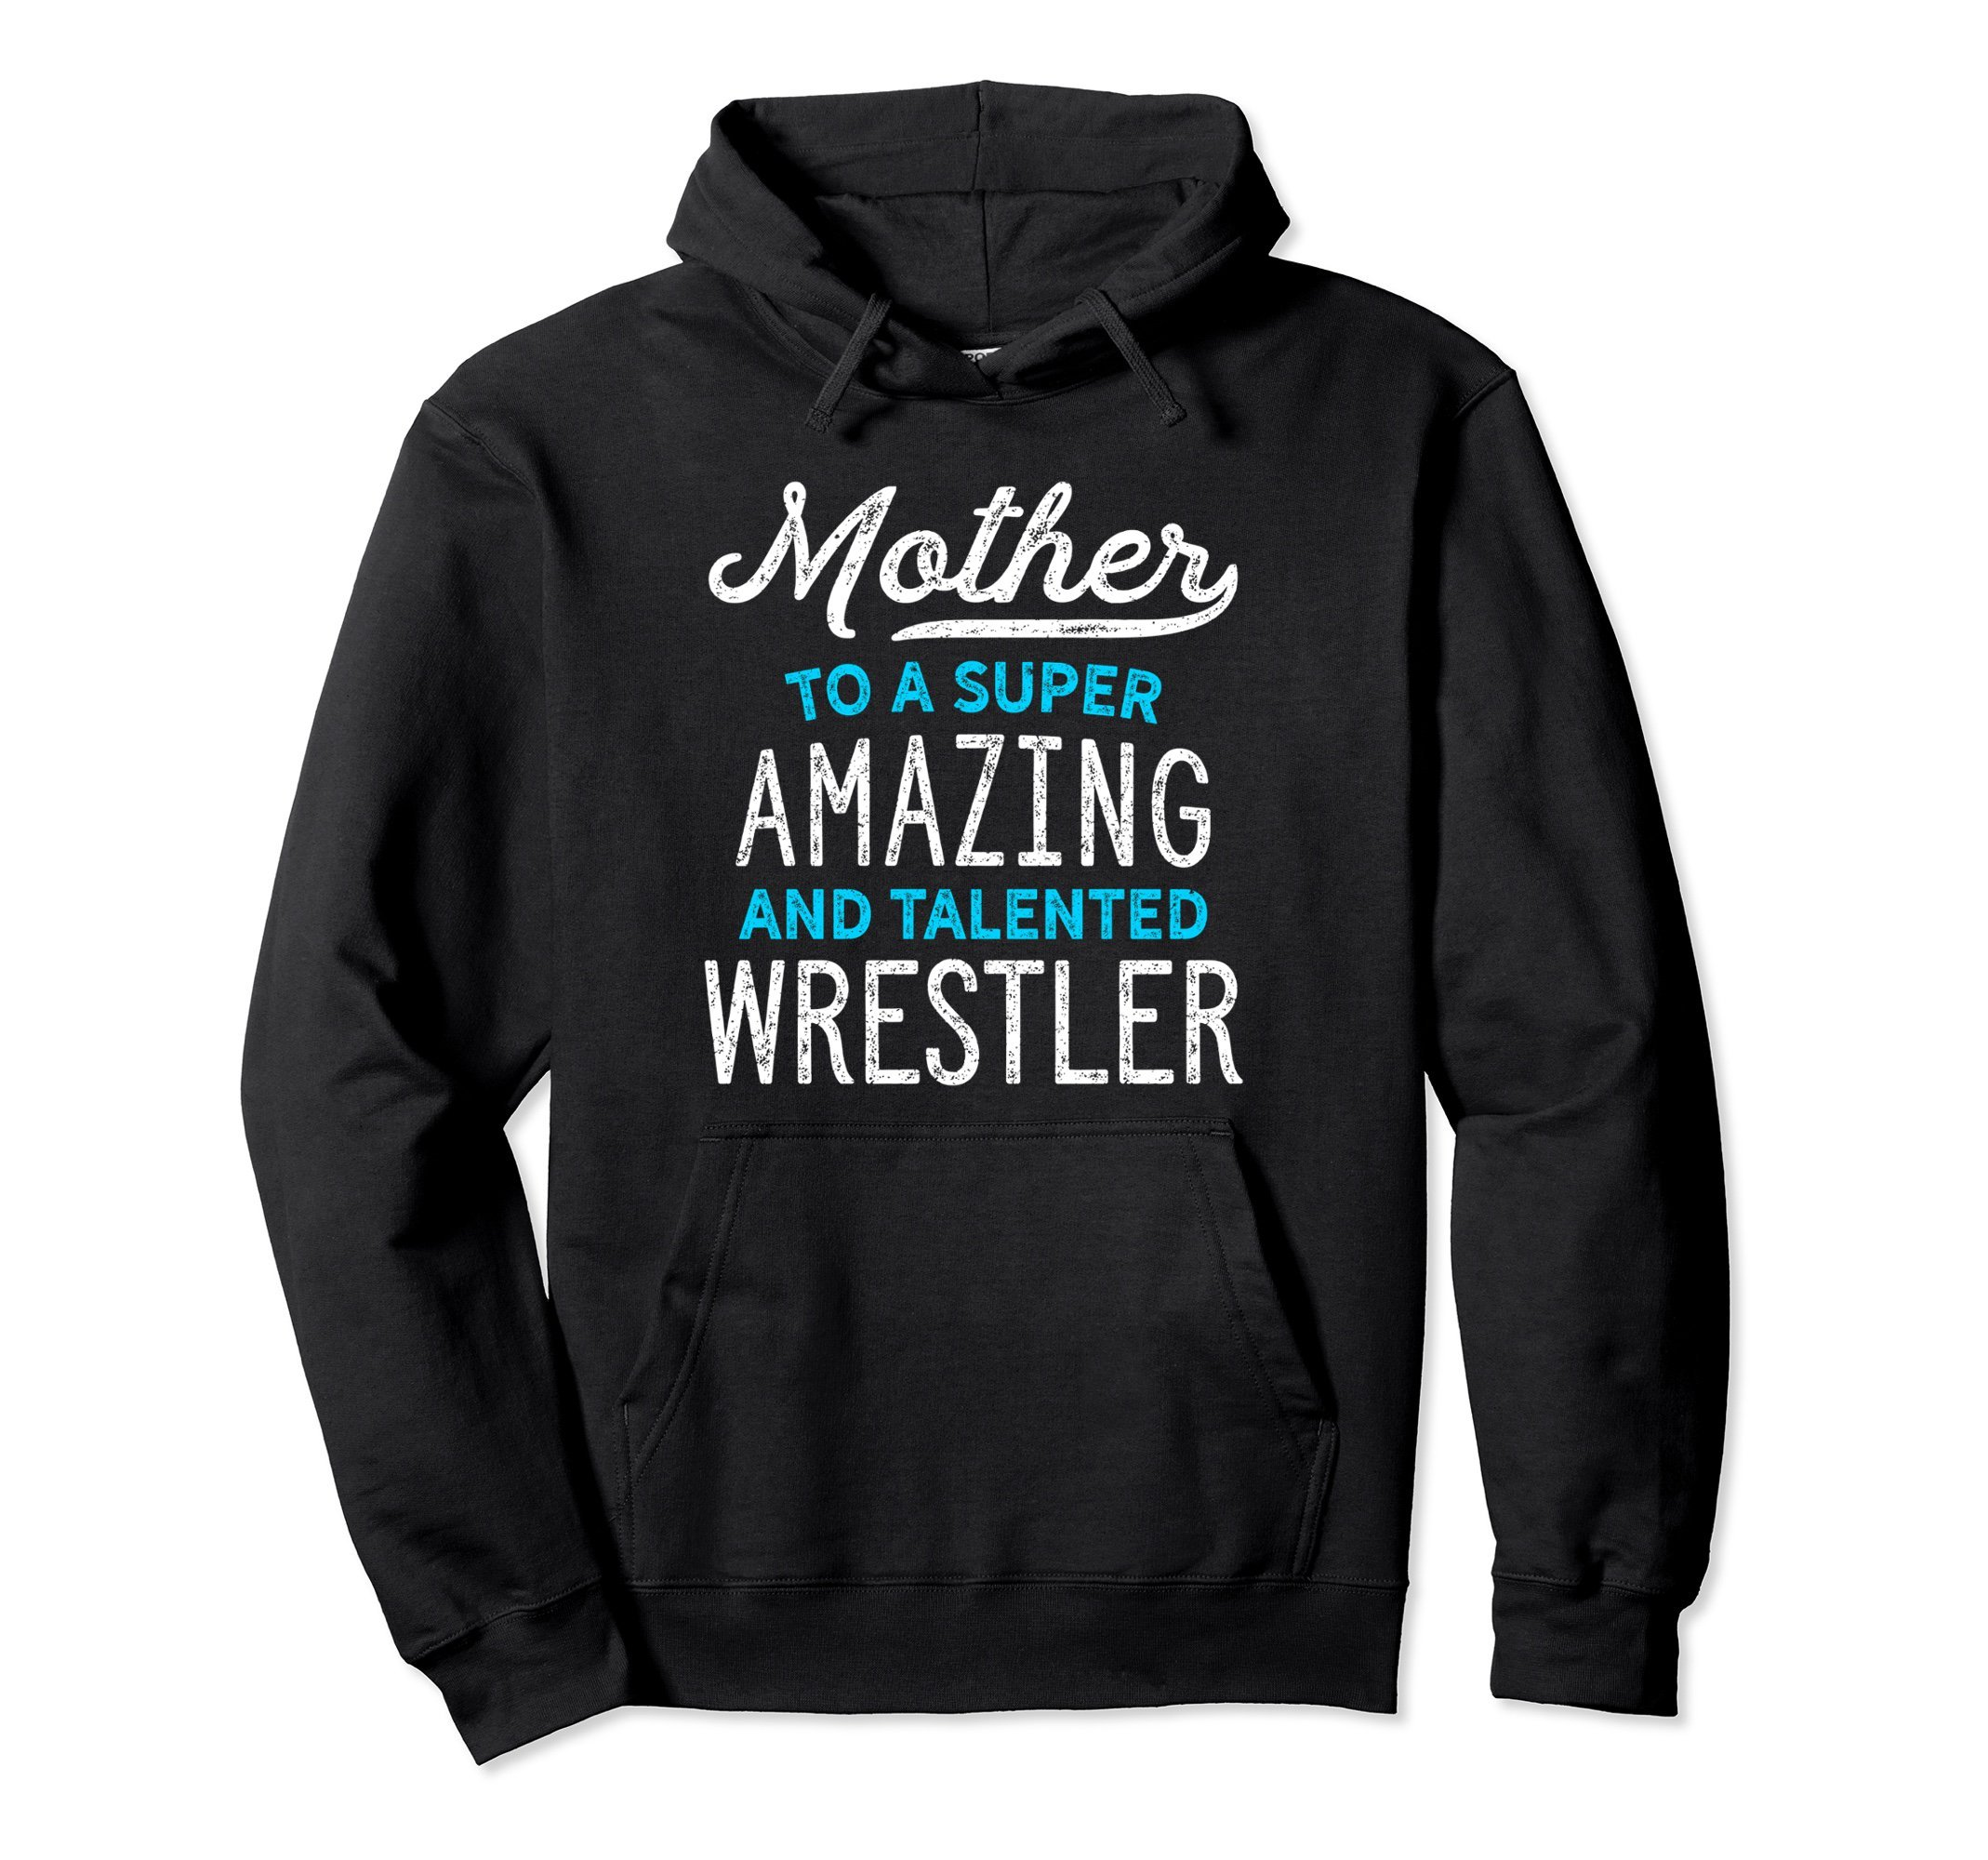 Unisex Wrestling Mother Hoodie for Wrestle Moms, Cute Gift, Blue XL: Black